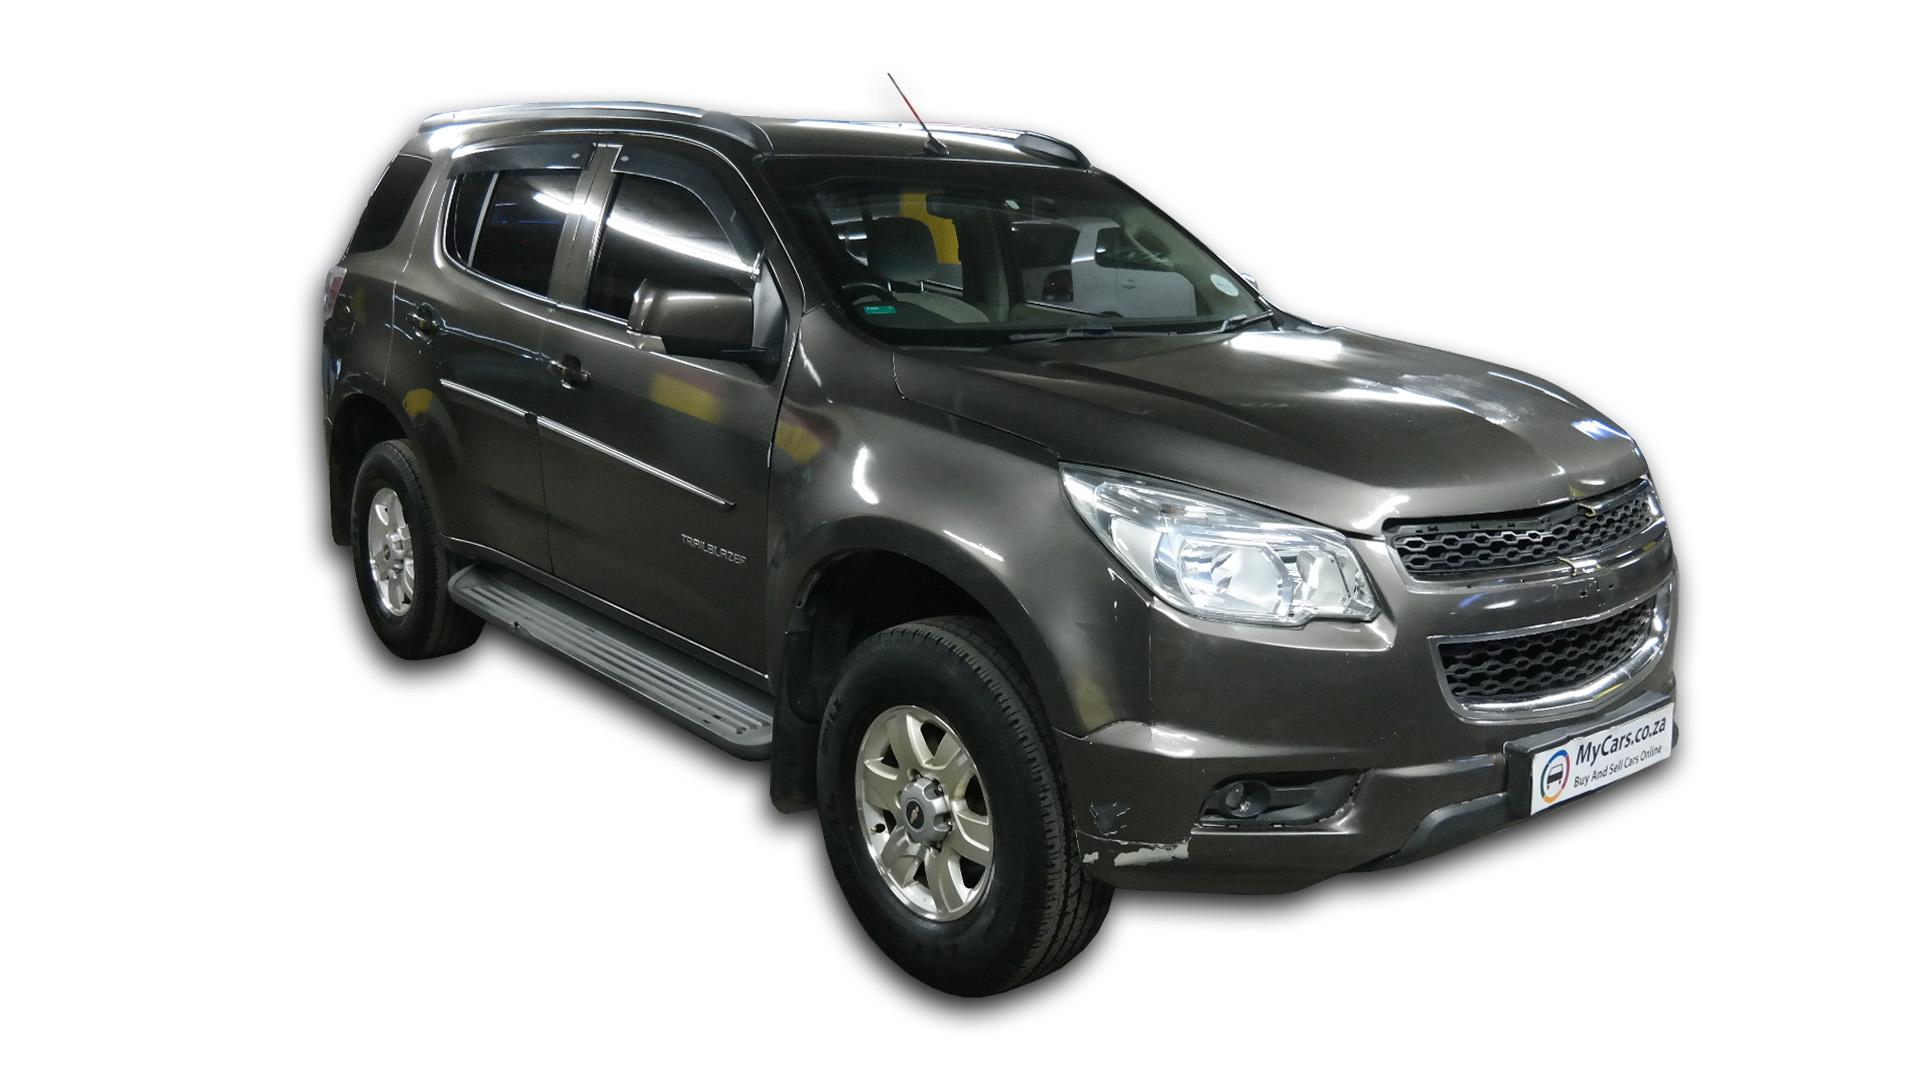 Chevrolet Trailblazer 2.5 LT